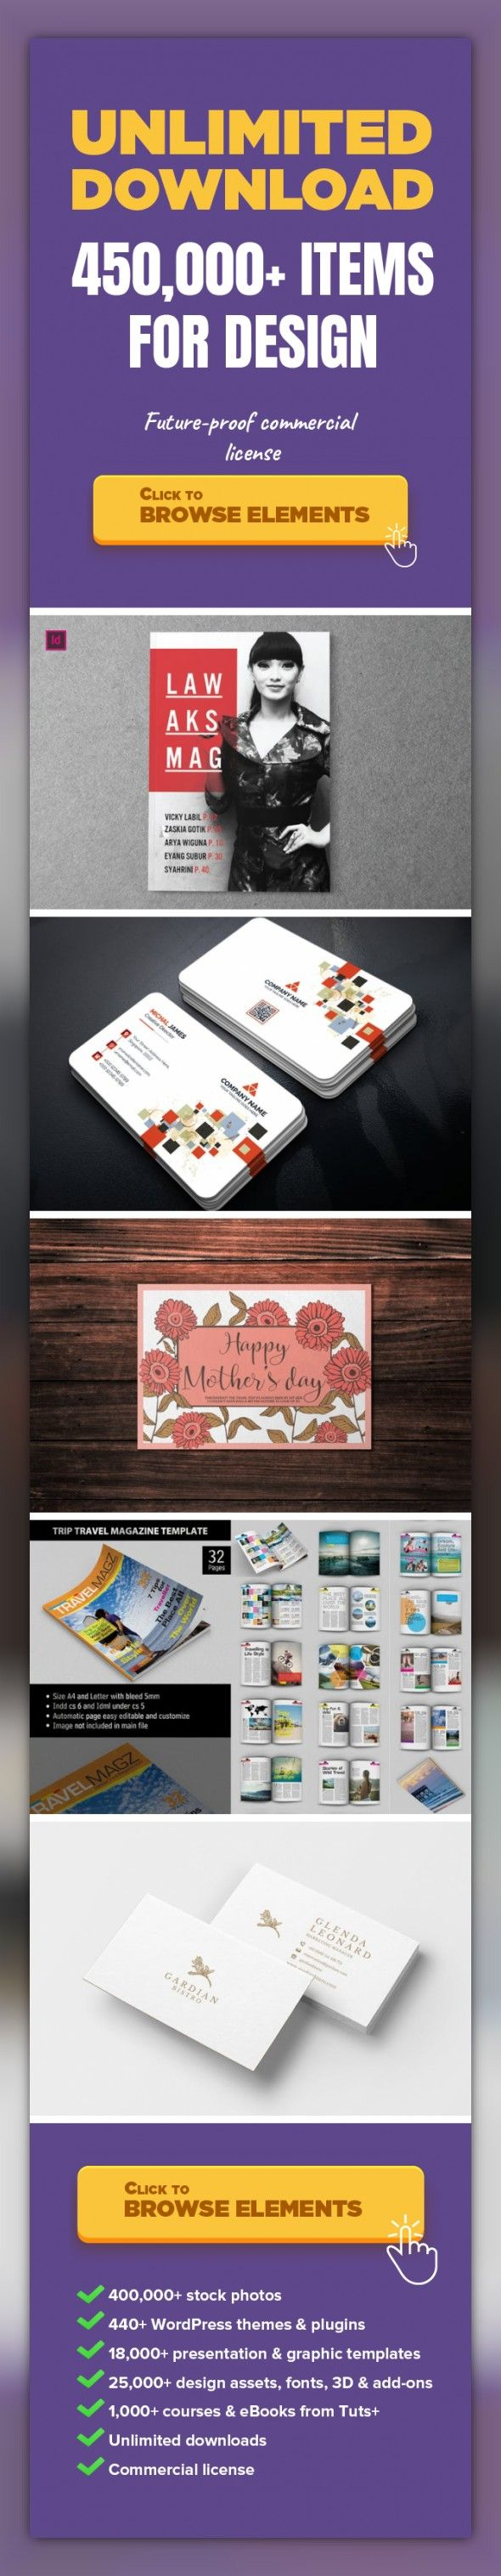 Lawaks Indesign Magazine Template Graphic Templates, Print Templates ...